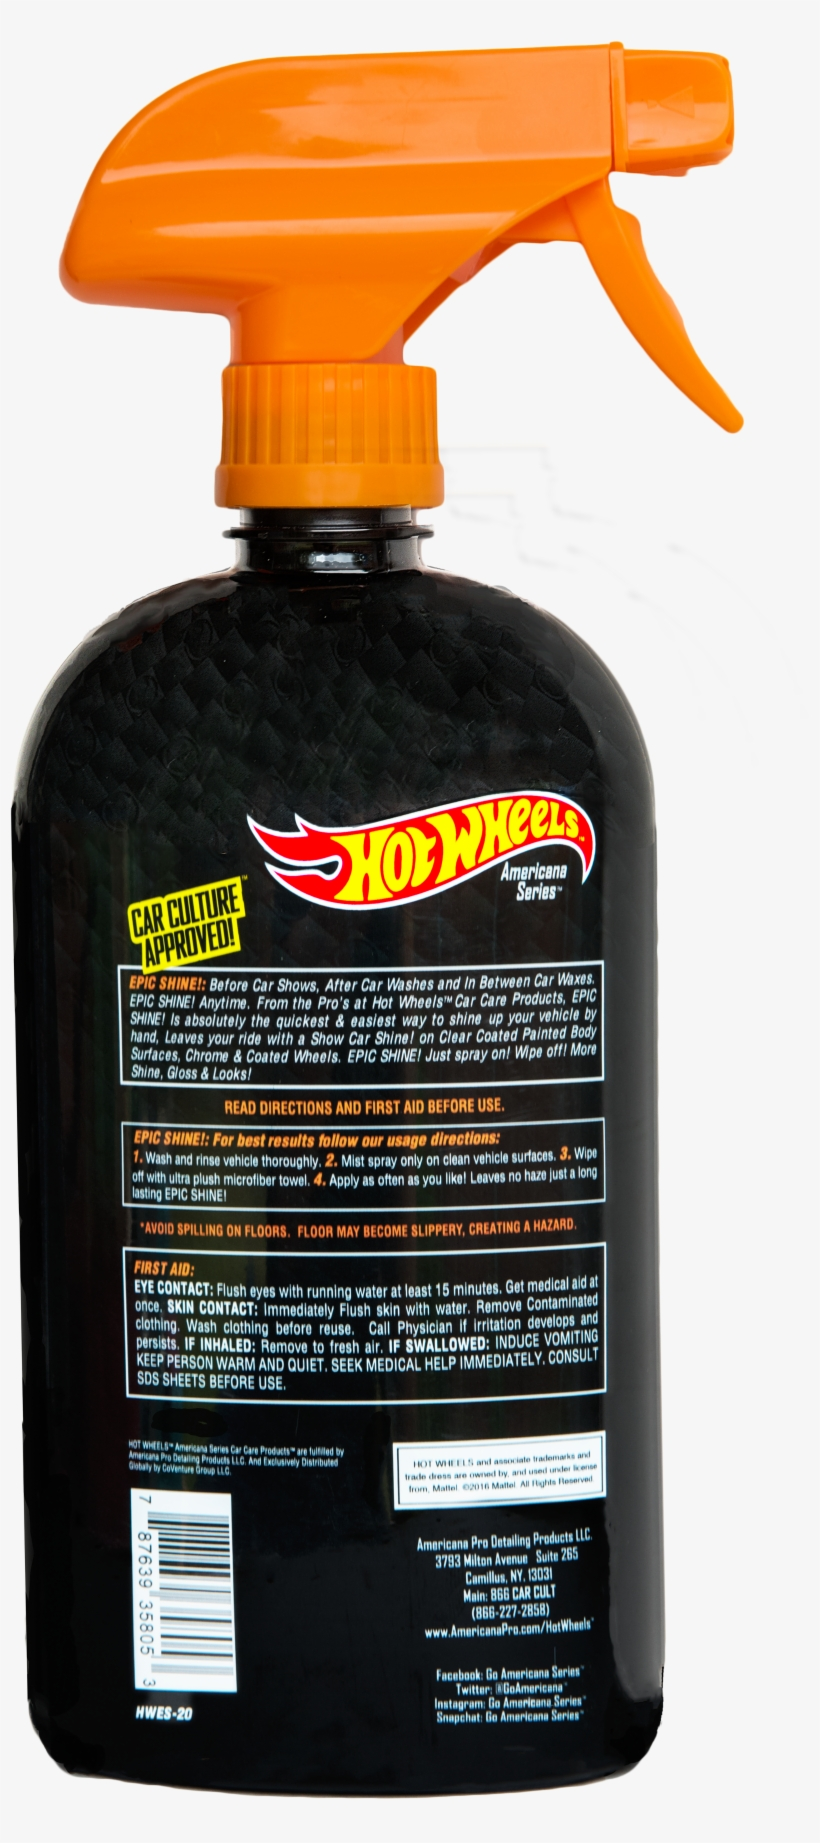 Hot Wheels Car Care Products - Hot Wheels - Free Transparent